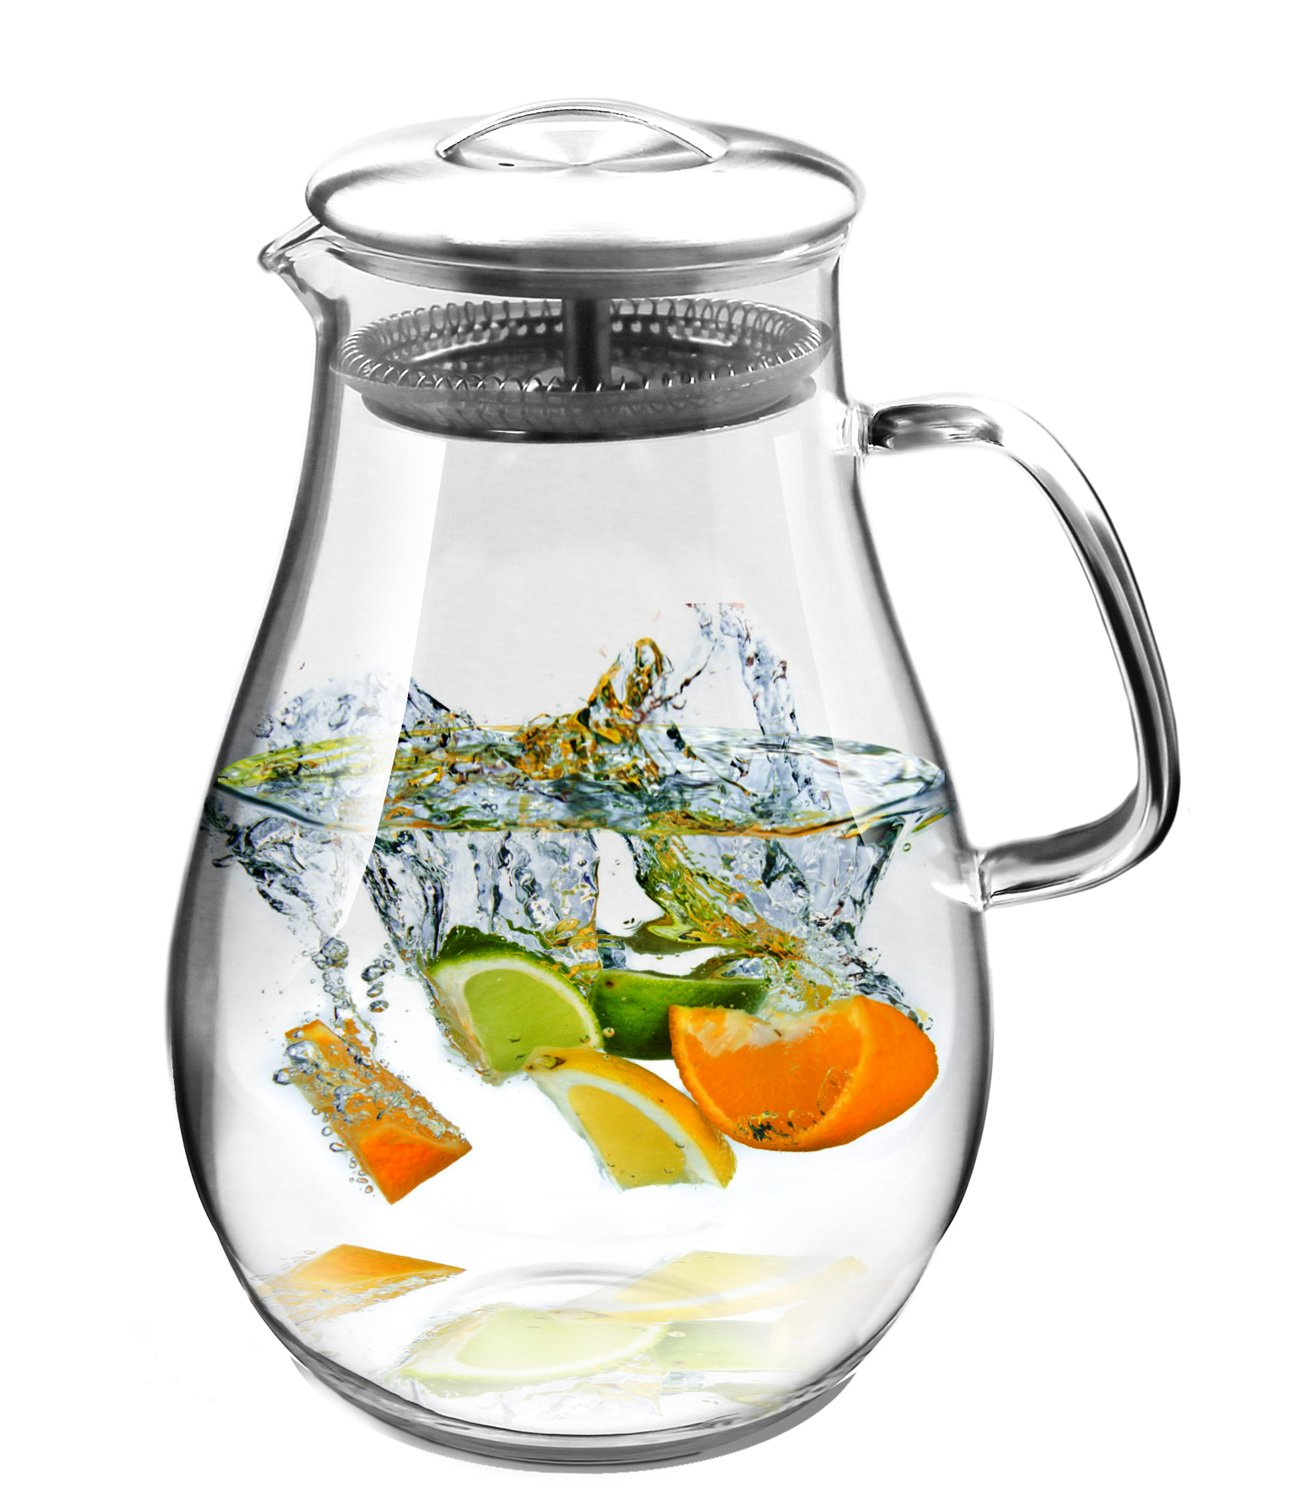 hiware glass pitcher with stainless steel lid 64 oz water carafe with handle g ebay. Black Bedroom Furniture Sets. Home Design Ideas